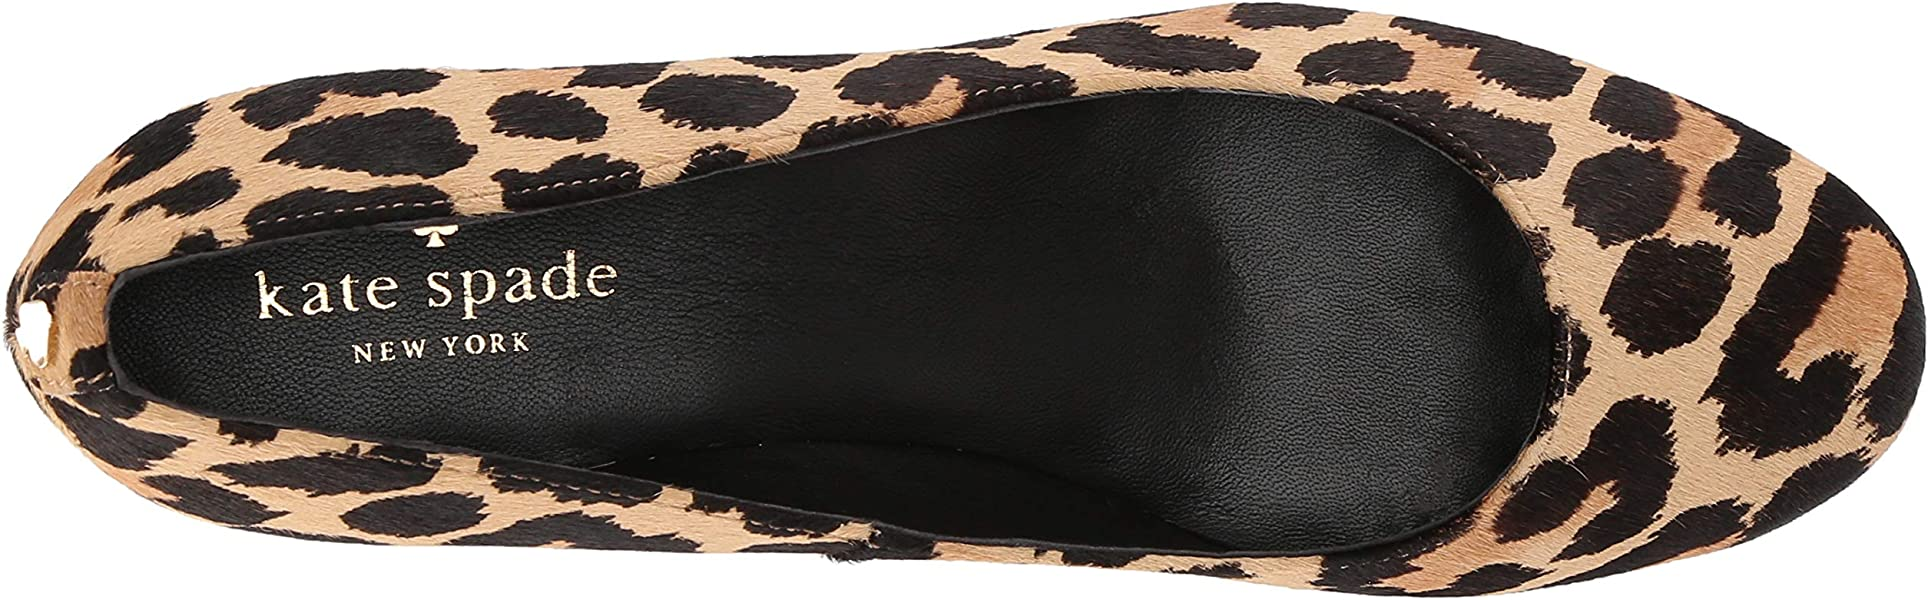 628c30cff21a Kate Spade New York Women s Beverly Pump Amaretto Black 5 M US. Back.  Double-tap to zoom